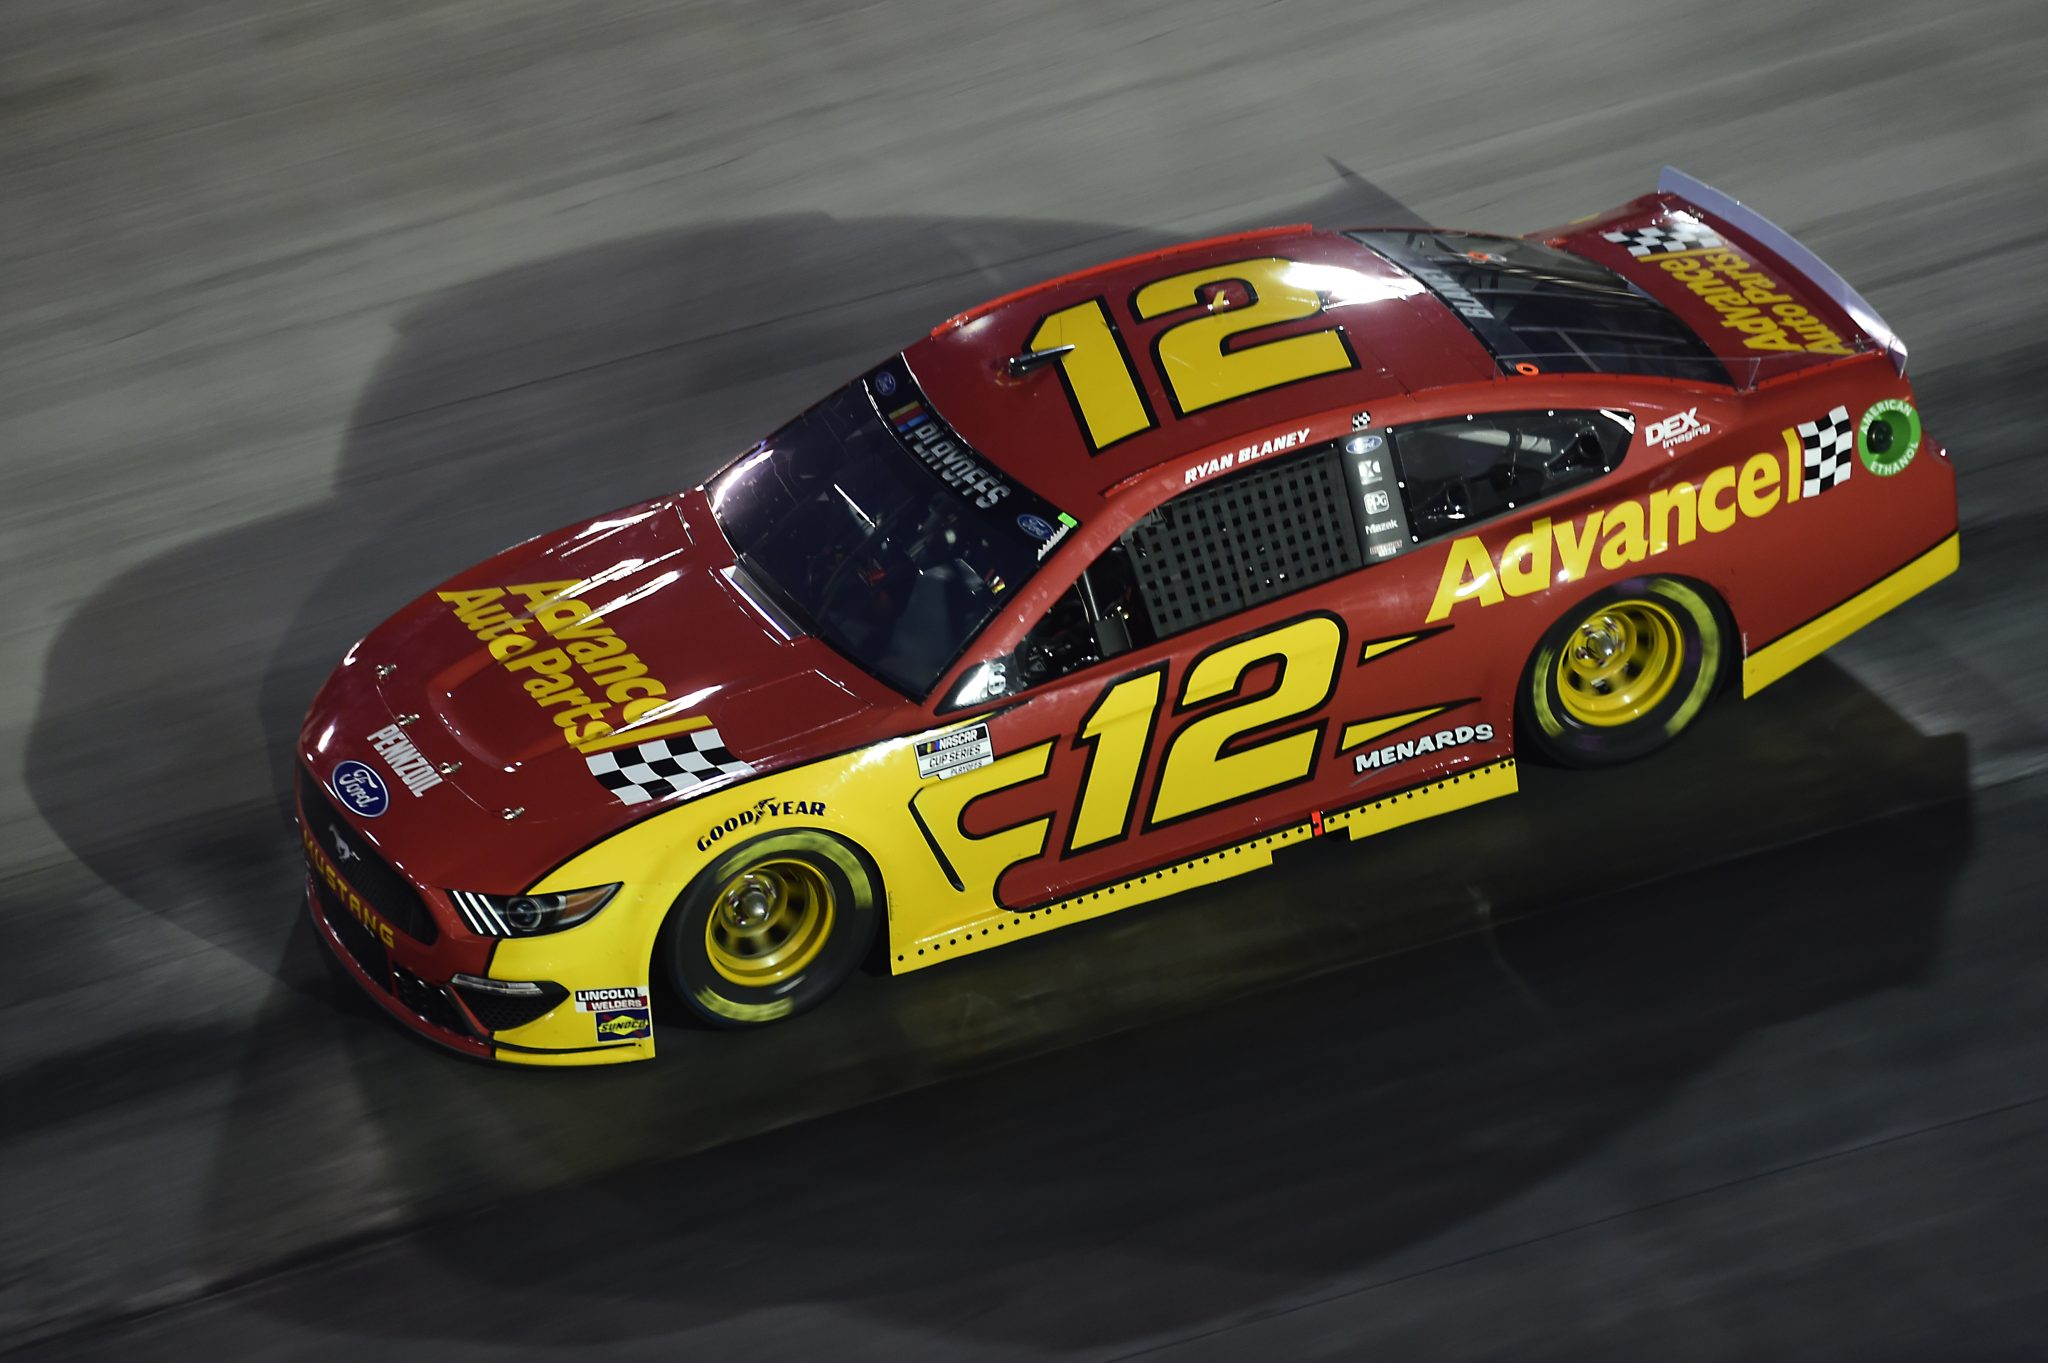 BRISTOL, TENNESSEE - SEPTEMBER 19: Ryan Blaney, driver of the #12 Advance Auto Parts Ford, drives during the NASCAR Cup Series Bass Pro Shops Night Race at Bristol Motor Speedway on September 19, 2020 in Bristol, Tennessee. (Photo by Jared C. Tilton/Getty Images) | Getty Images